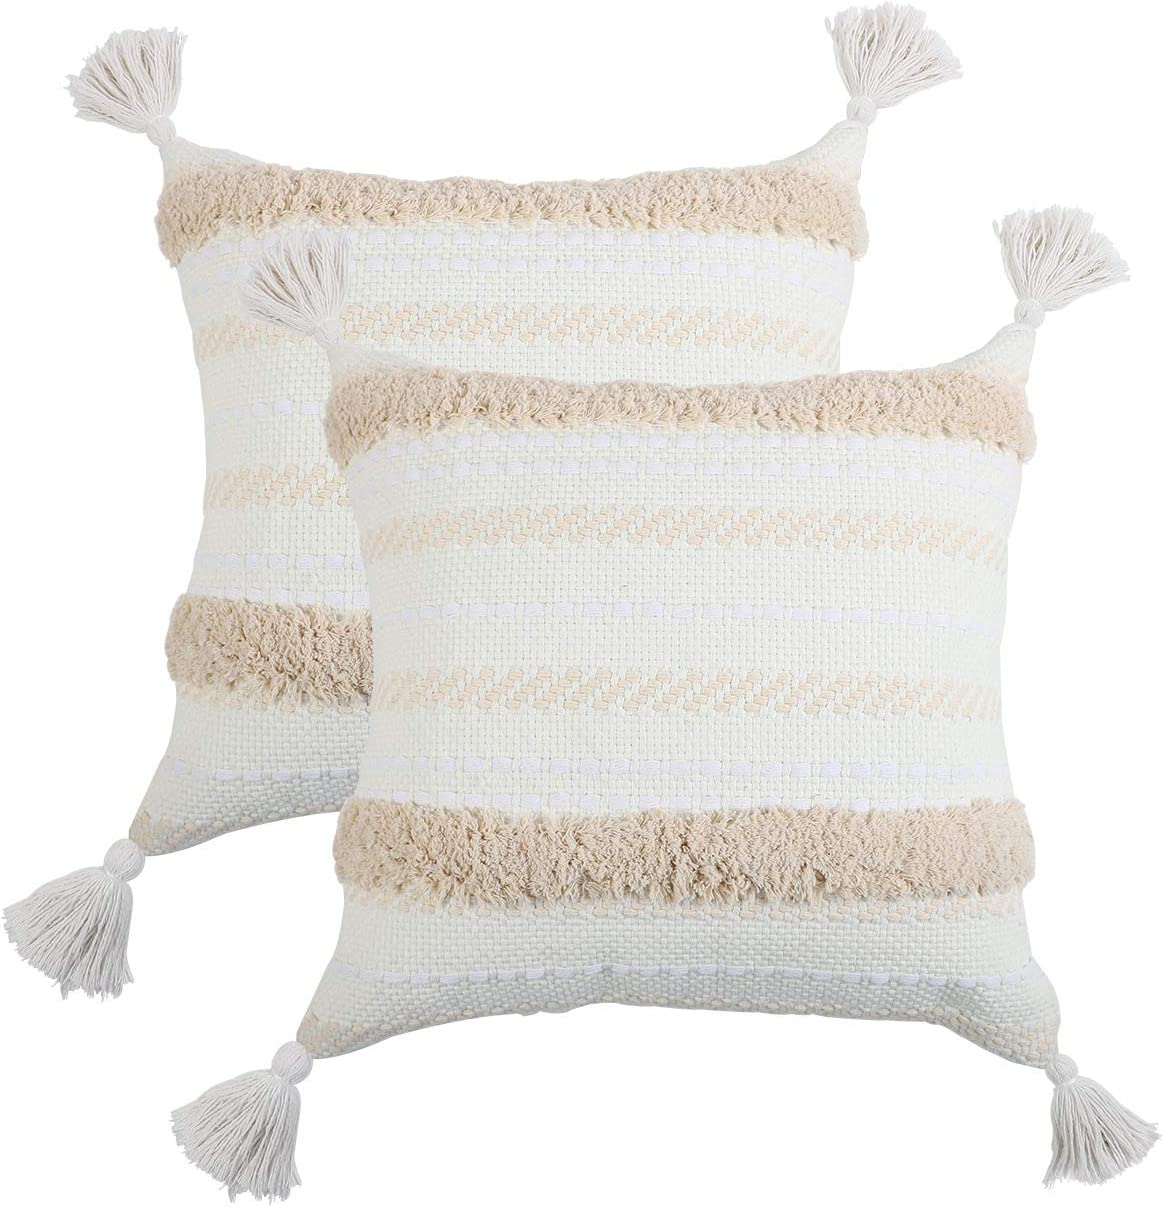 famibay Woven Tufted Boho Throw Pillow Covers Set of 2, Decorative Accent Neutral Pillow Covers Shams with Tassels Square Cotton Pillowcase Cushion Covers for Farmhouse Bedroom Living Room